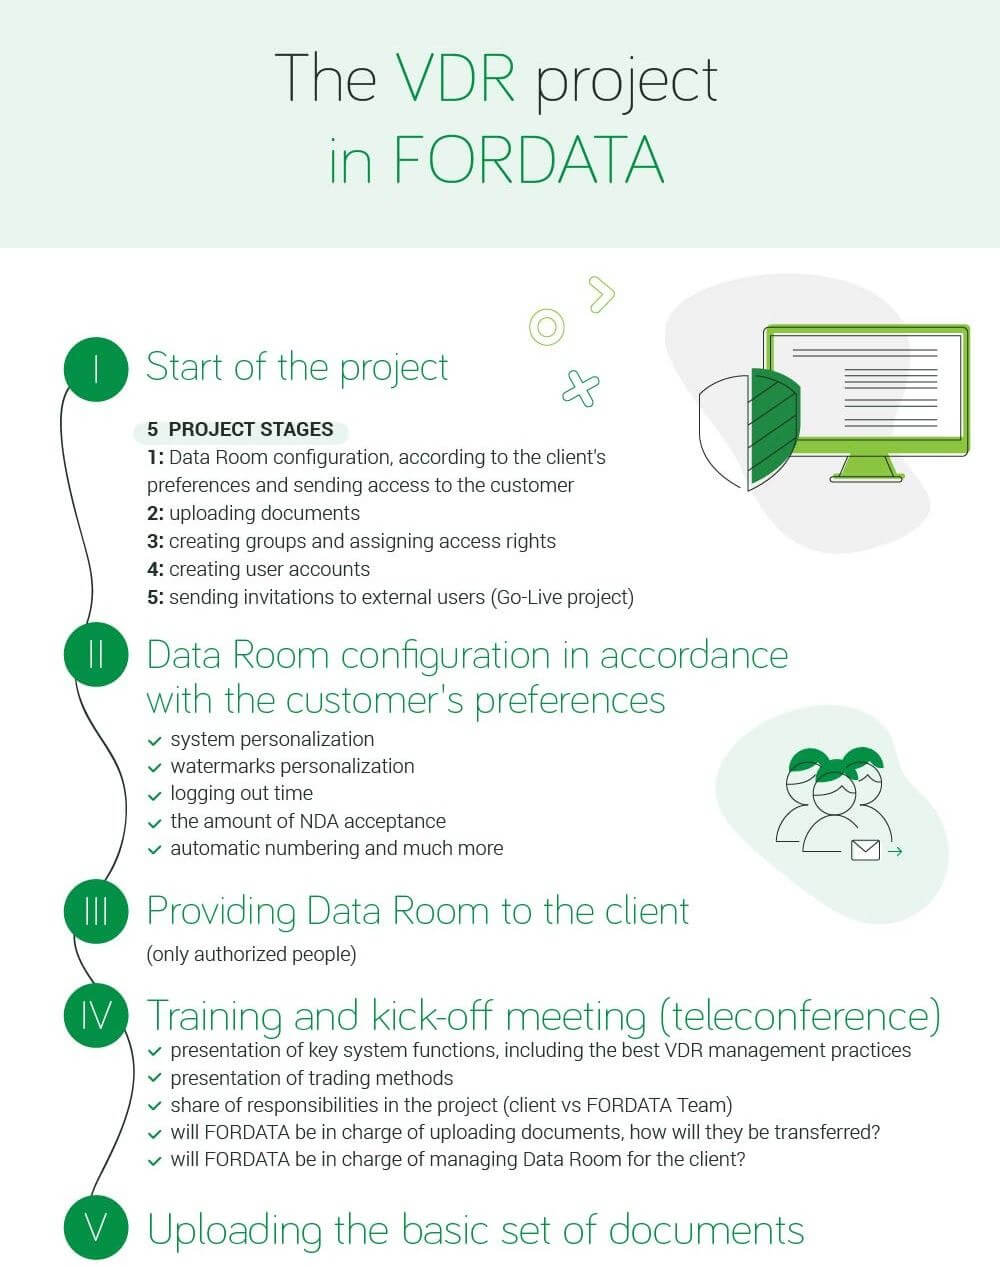 The VDR project in FORDATA